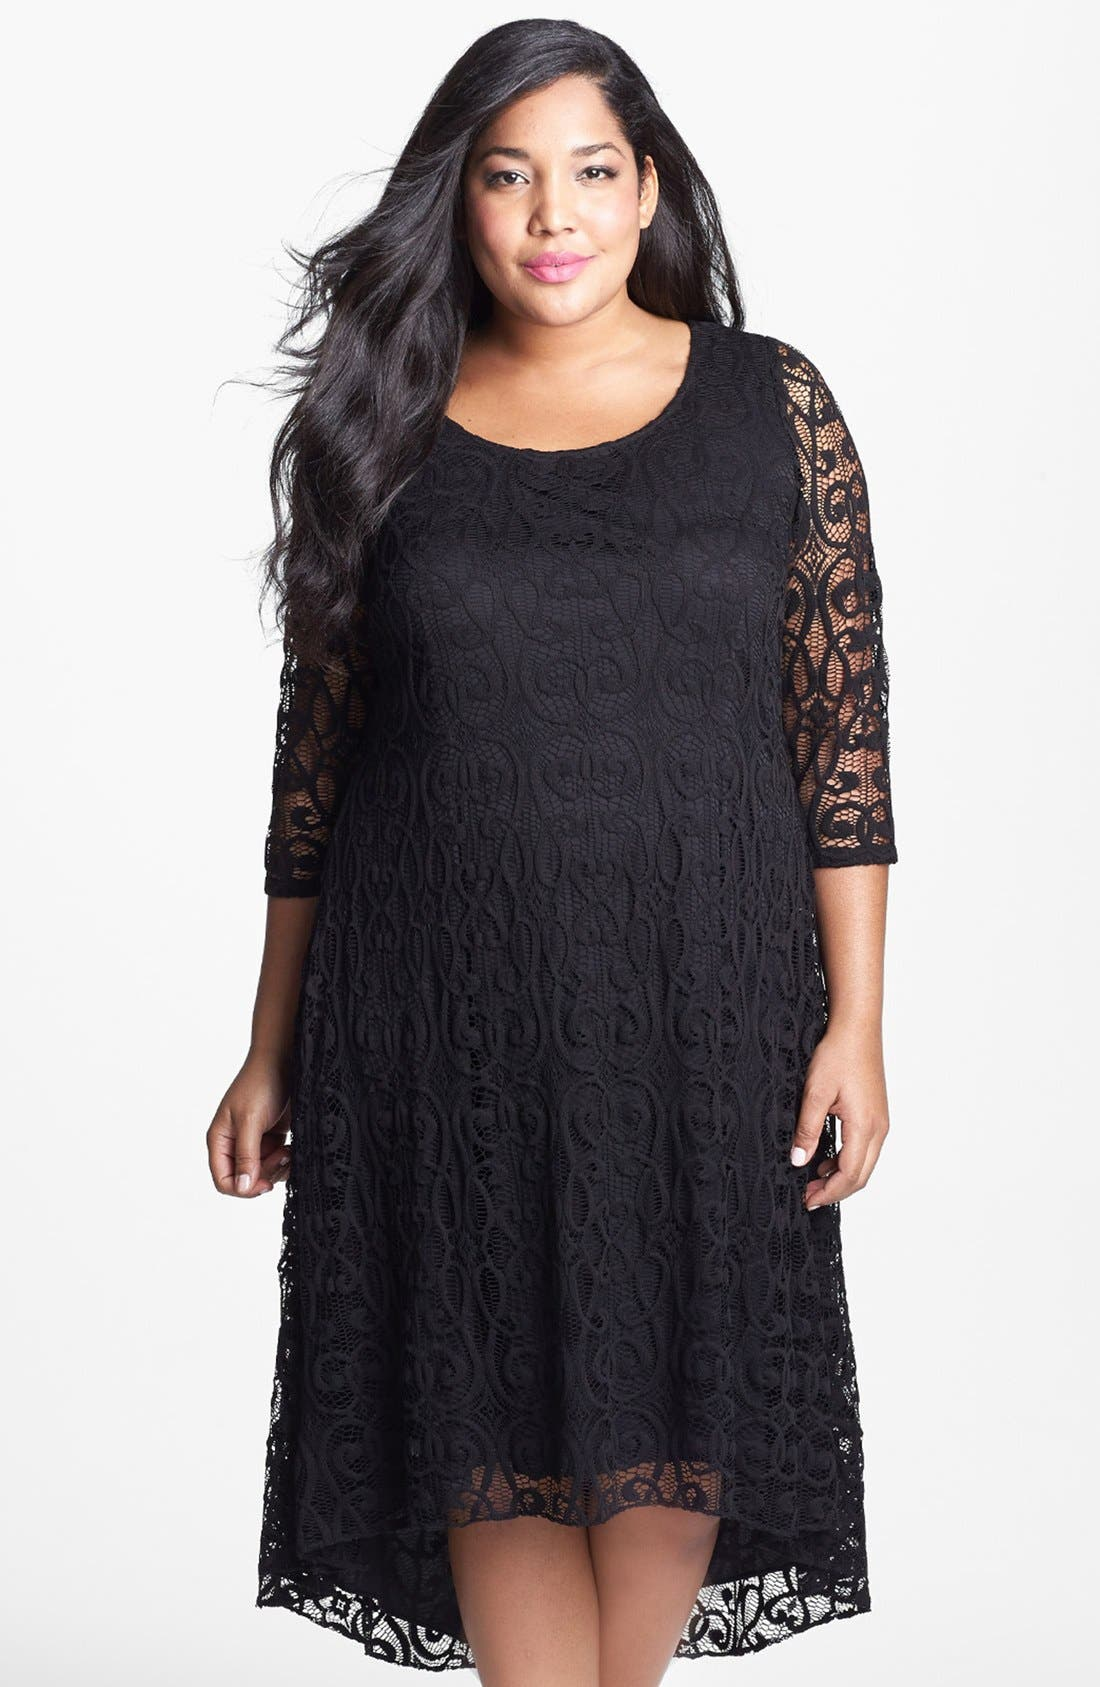 Alternate Image 1 Selected - Adrianna Papell Lace High/Low Dress (Plus Size)